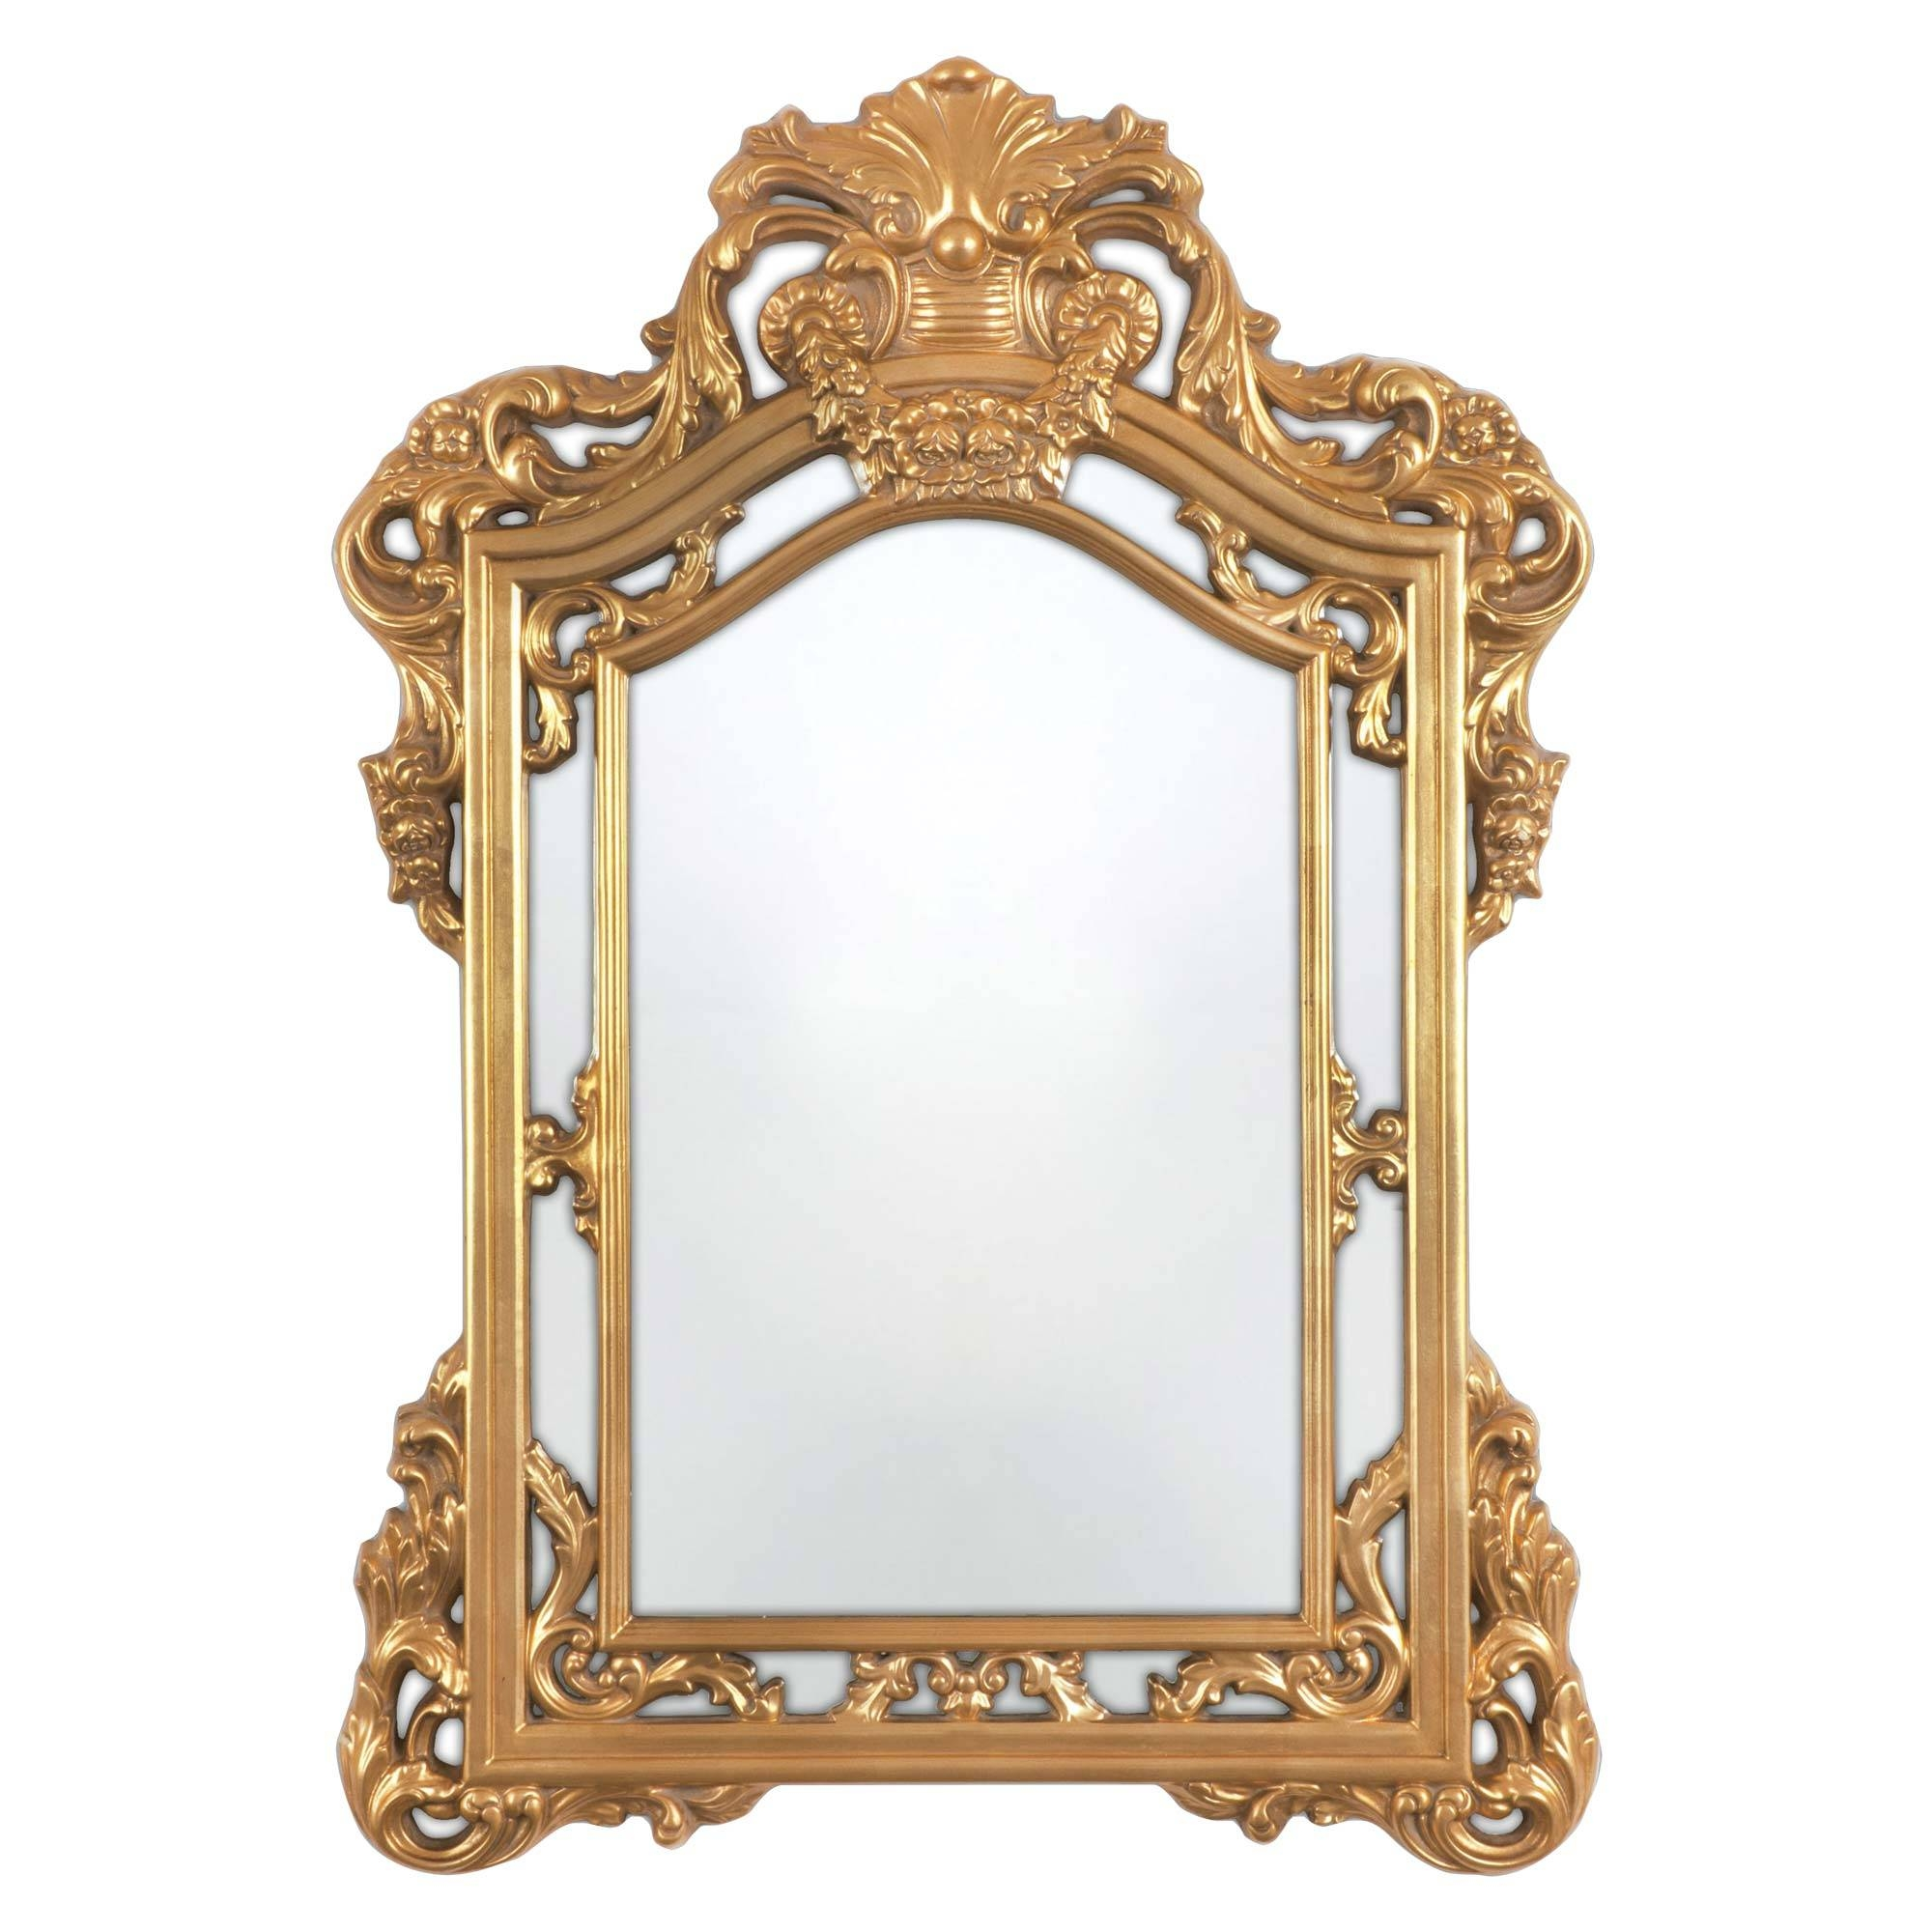 Bathroom: Astounding Baroque Mirror With Unique Frame For Bathroom within Silver Baroque Mirrors (Image 3 of 15)